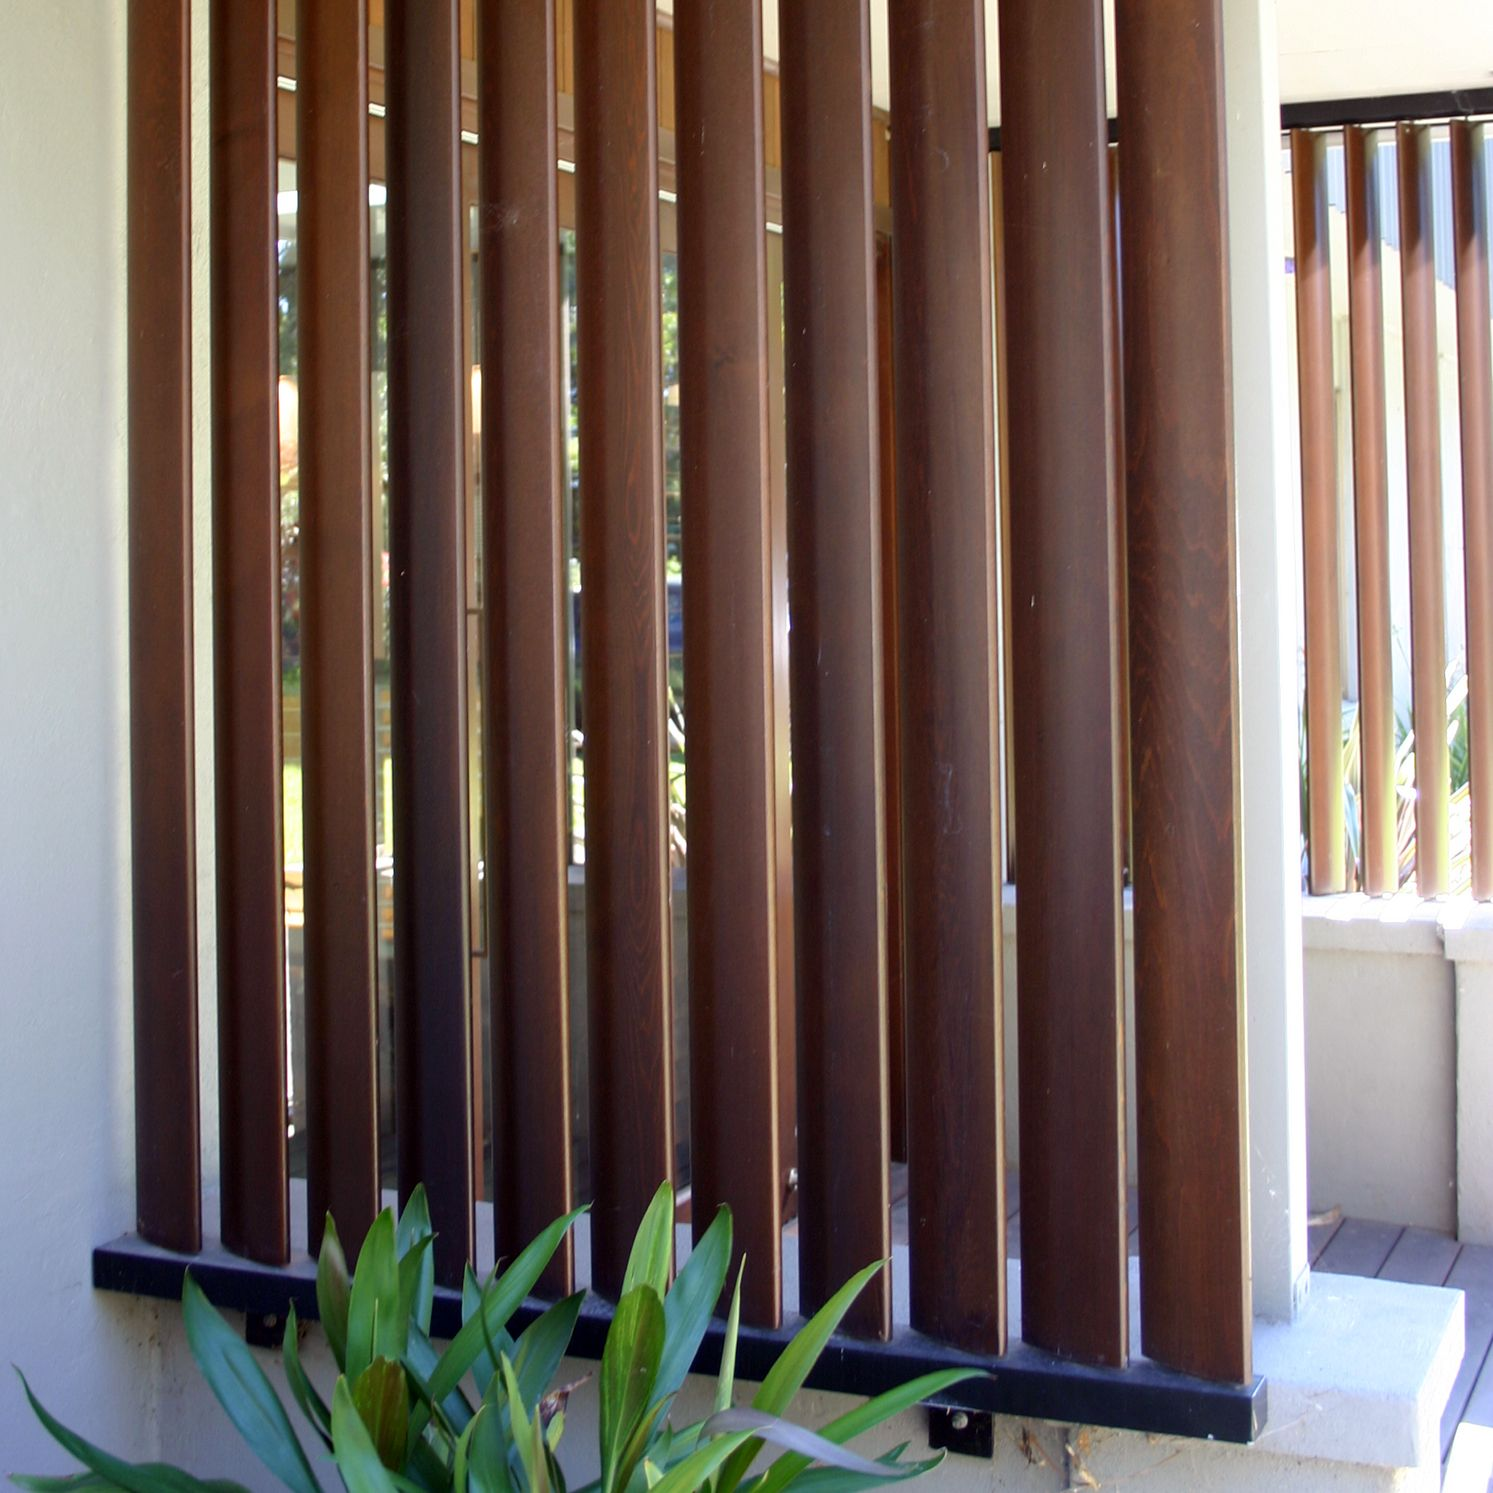 Privacy Screens For Exterior Verandahs To Shoji Screens For Dividing Rooms:  Made To Your Exact Needs Locally. Range From Aluminium, Hardwood To Western  Red ...